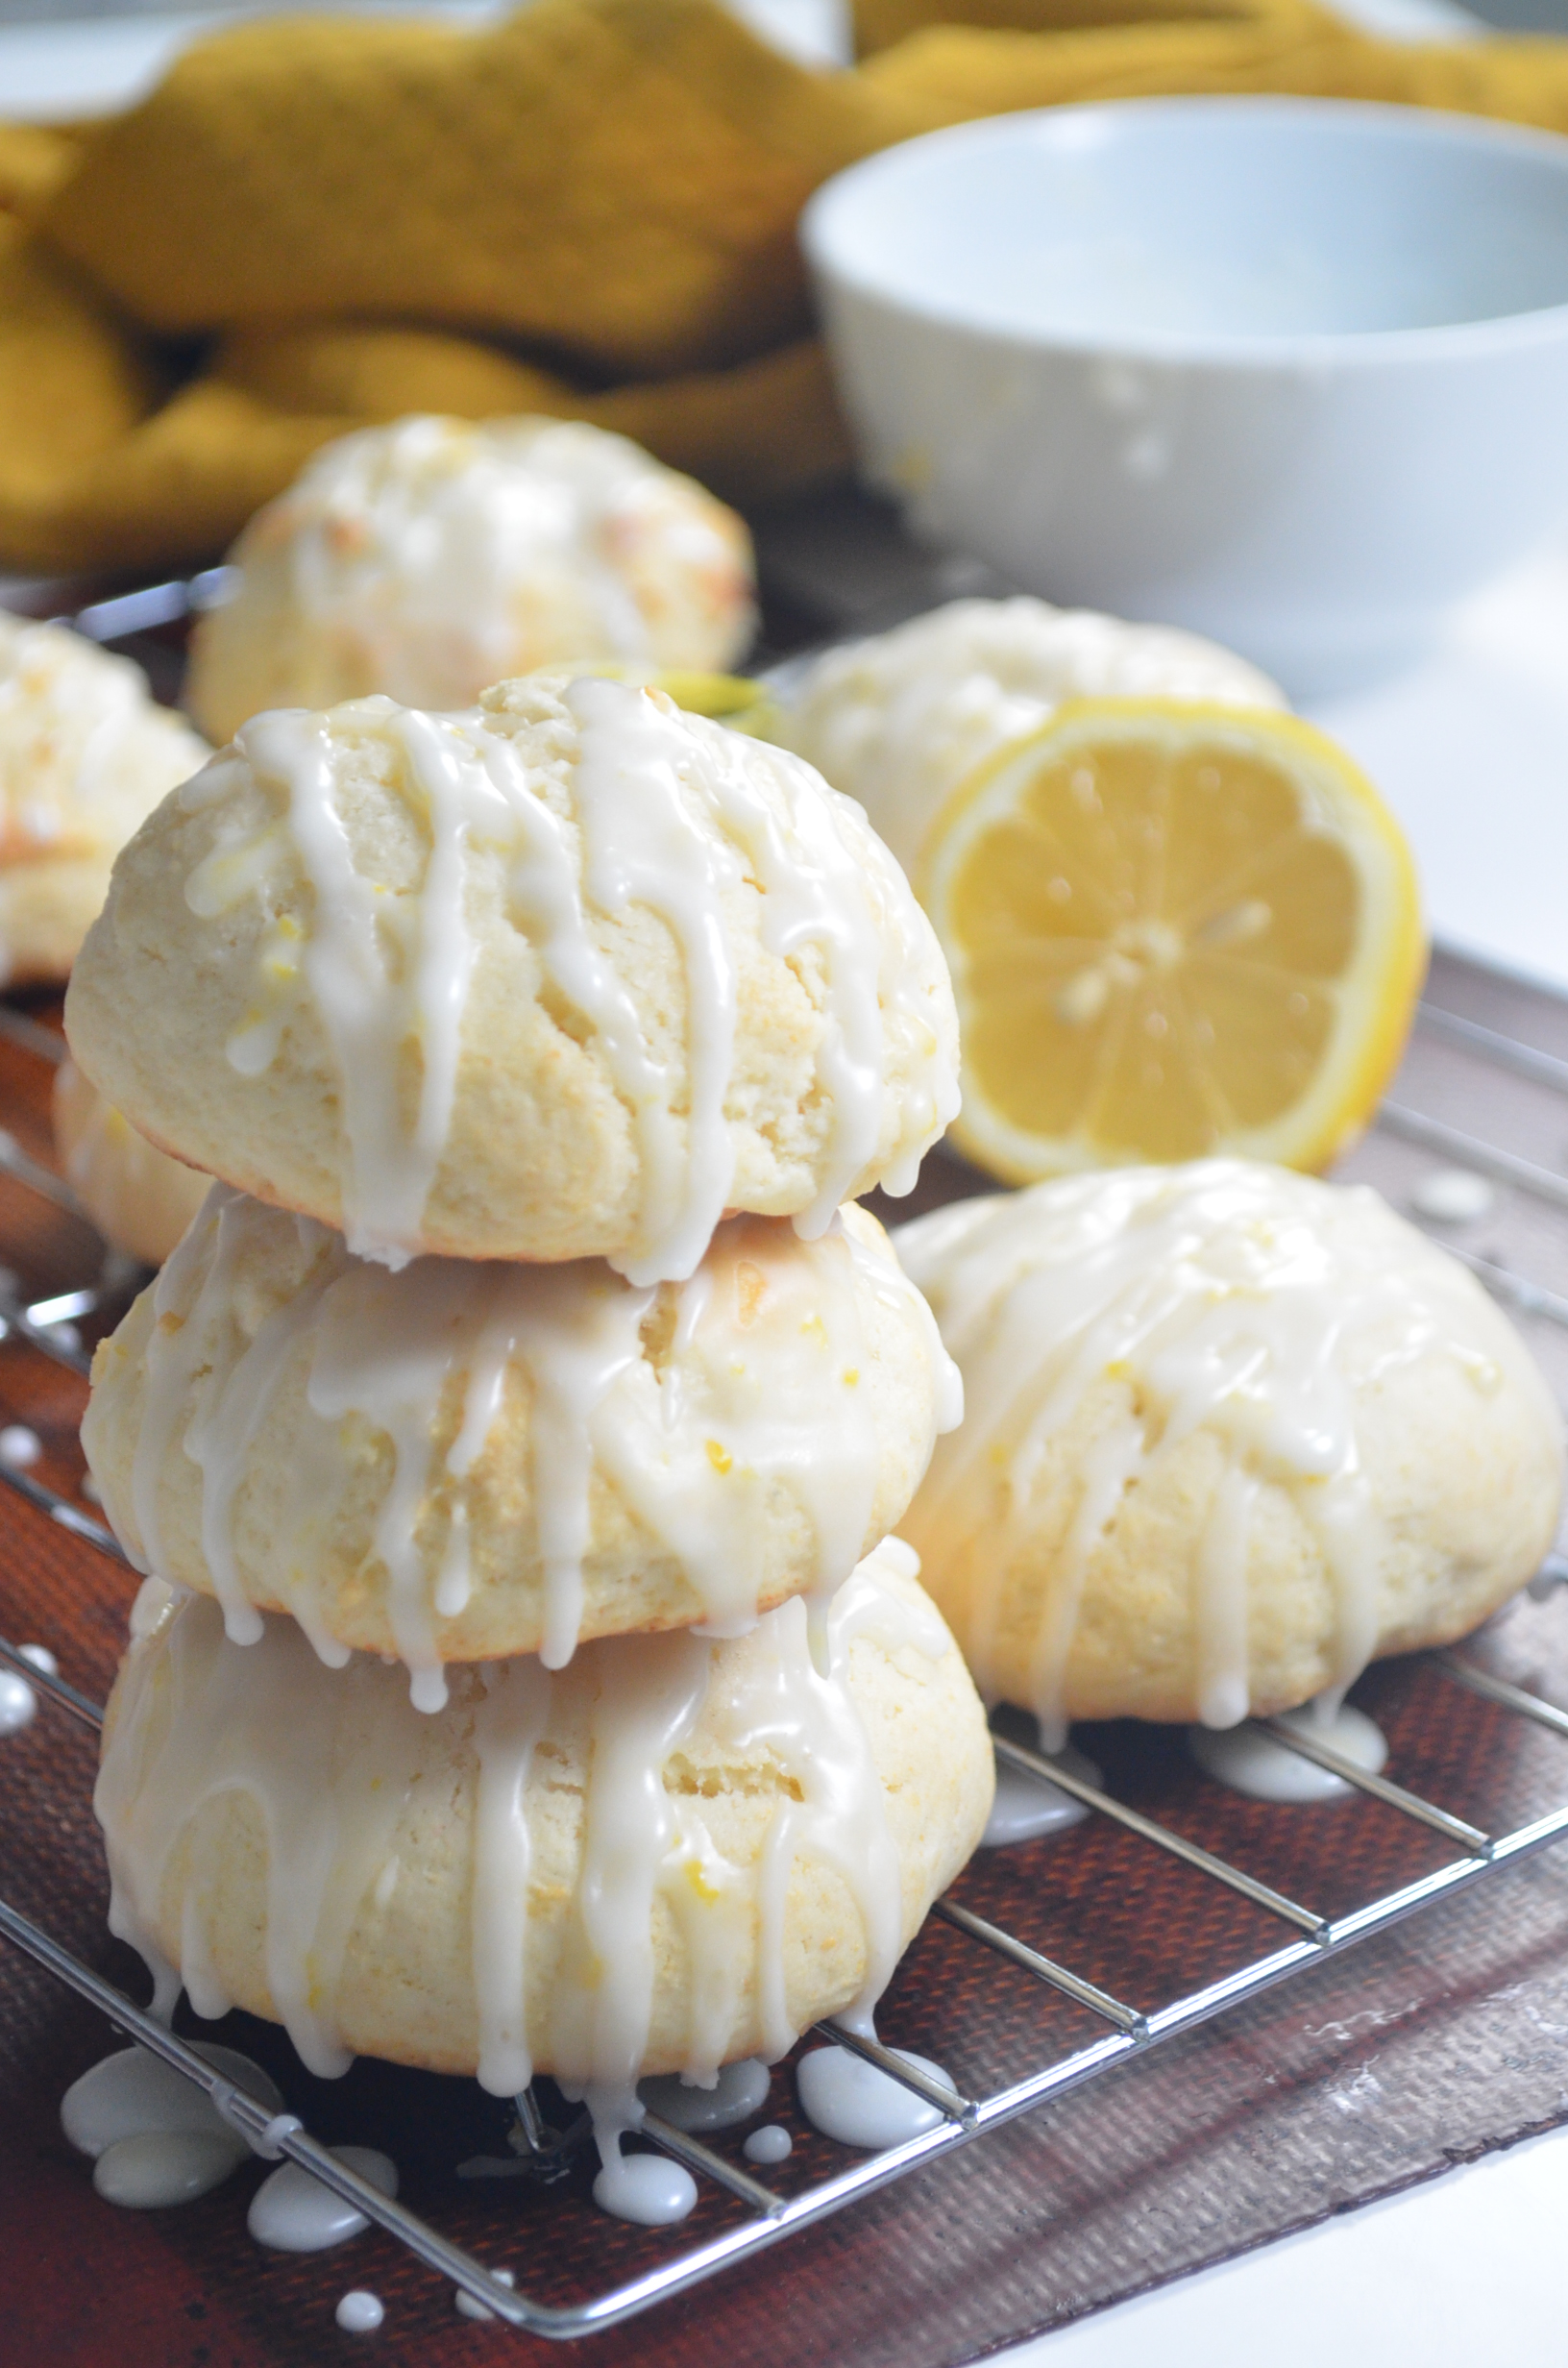 Lemon Ricotta Cheese Cookie with Lemon Sugar Glaze By SweetnSpicyLiving